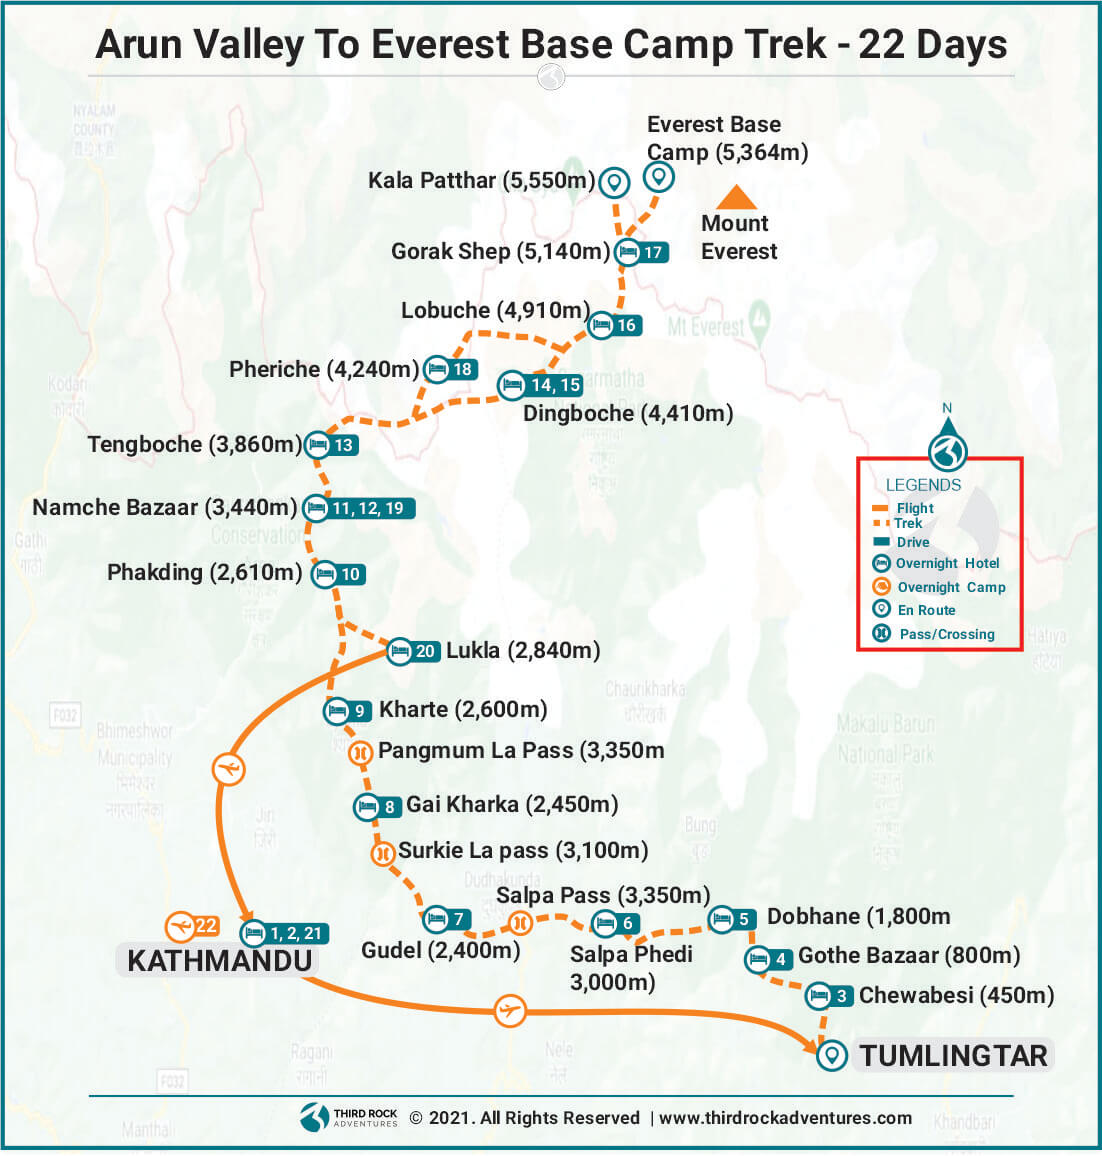 Arun Valley To Everest Base Camp Trek Route Map